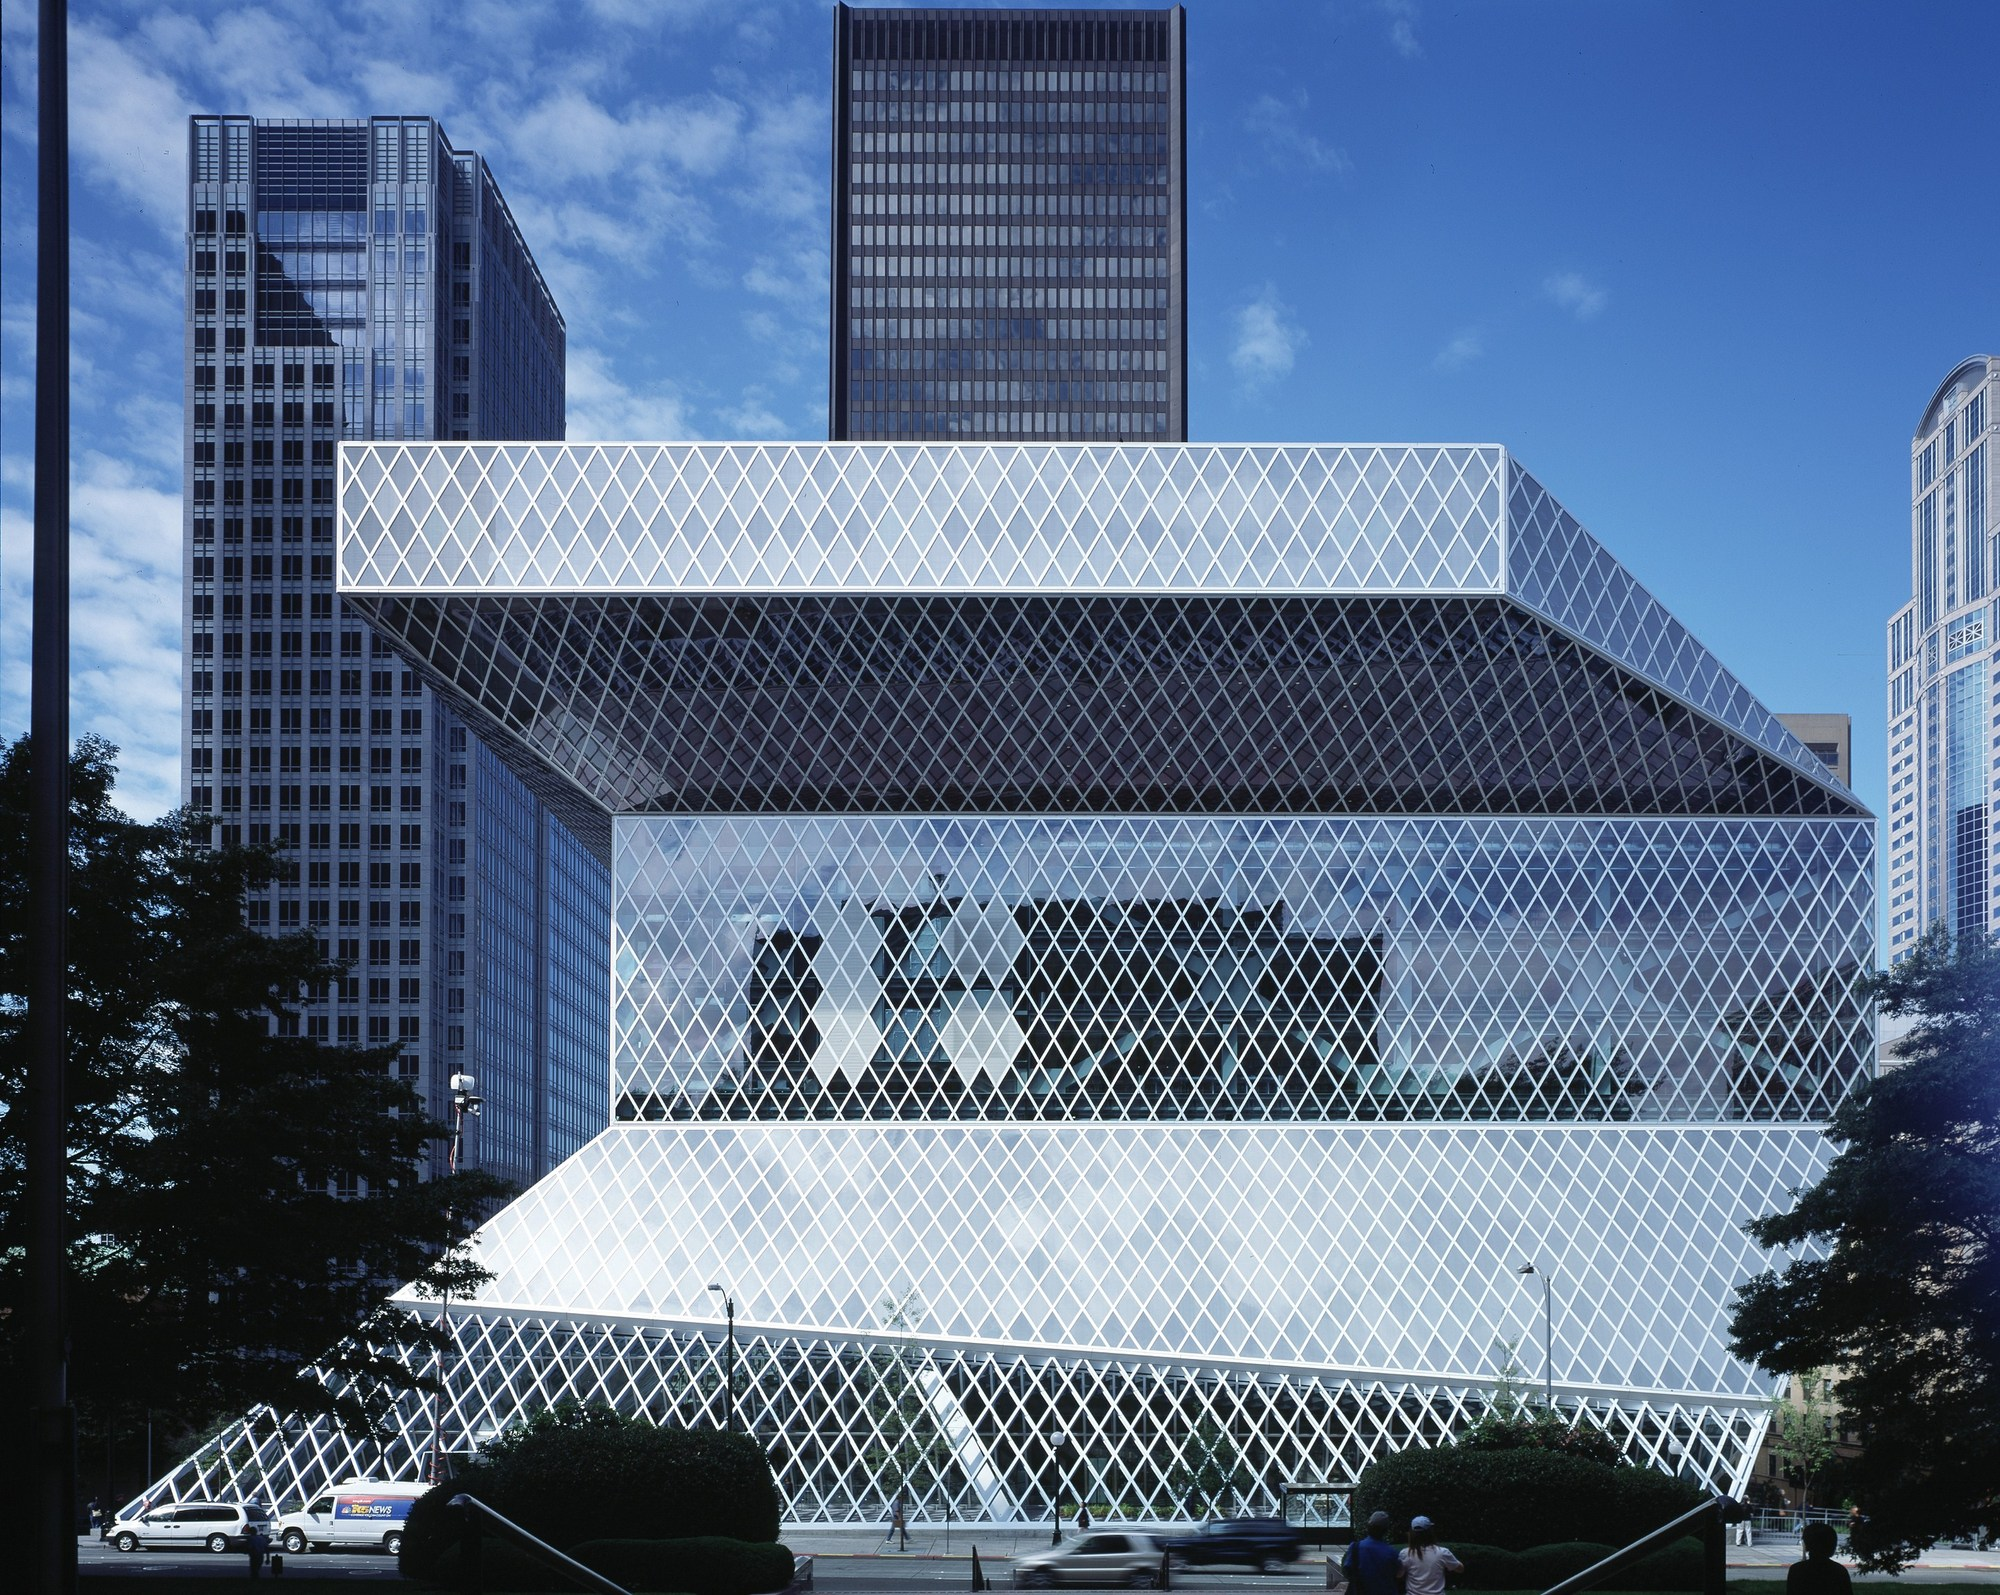 Gallery of seattle central library oma lmn 4 - Office for metropolitan architecture oma ...